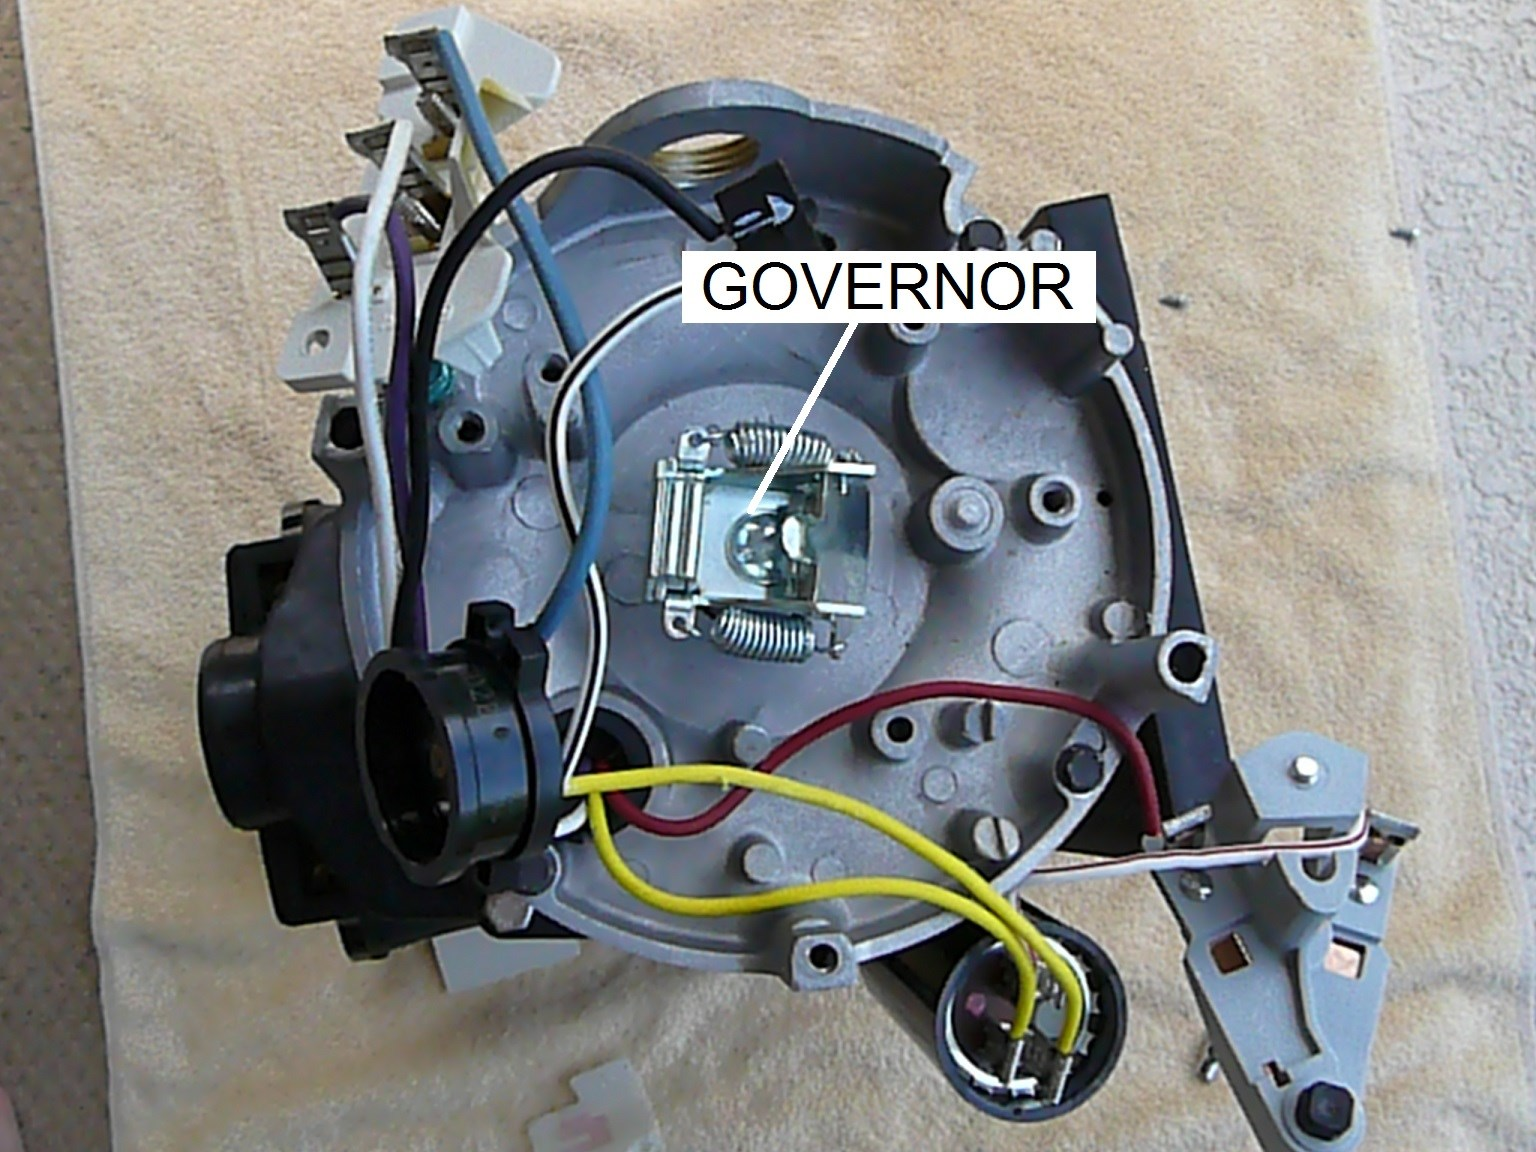 How To Replace The Governor On An Ao Smith Motor